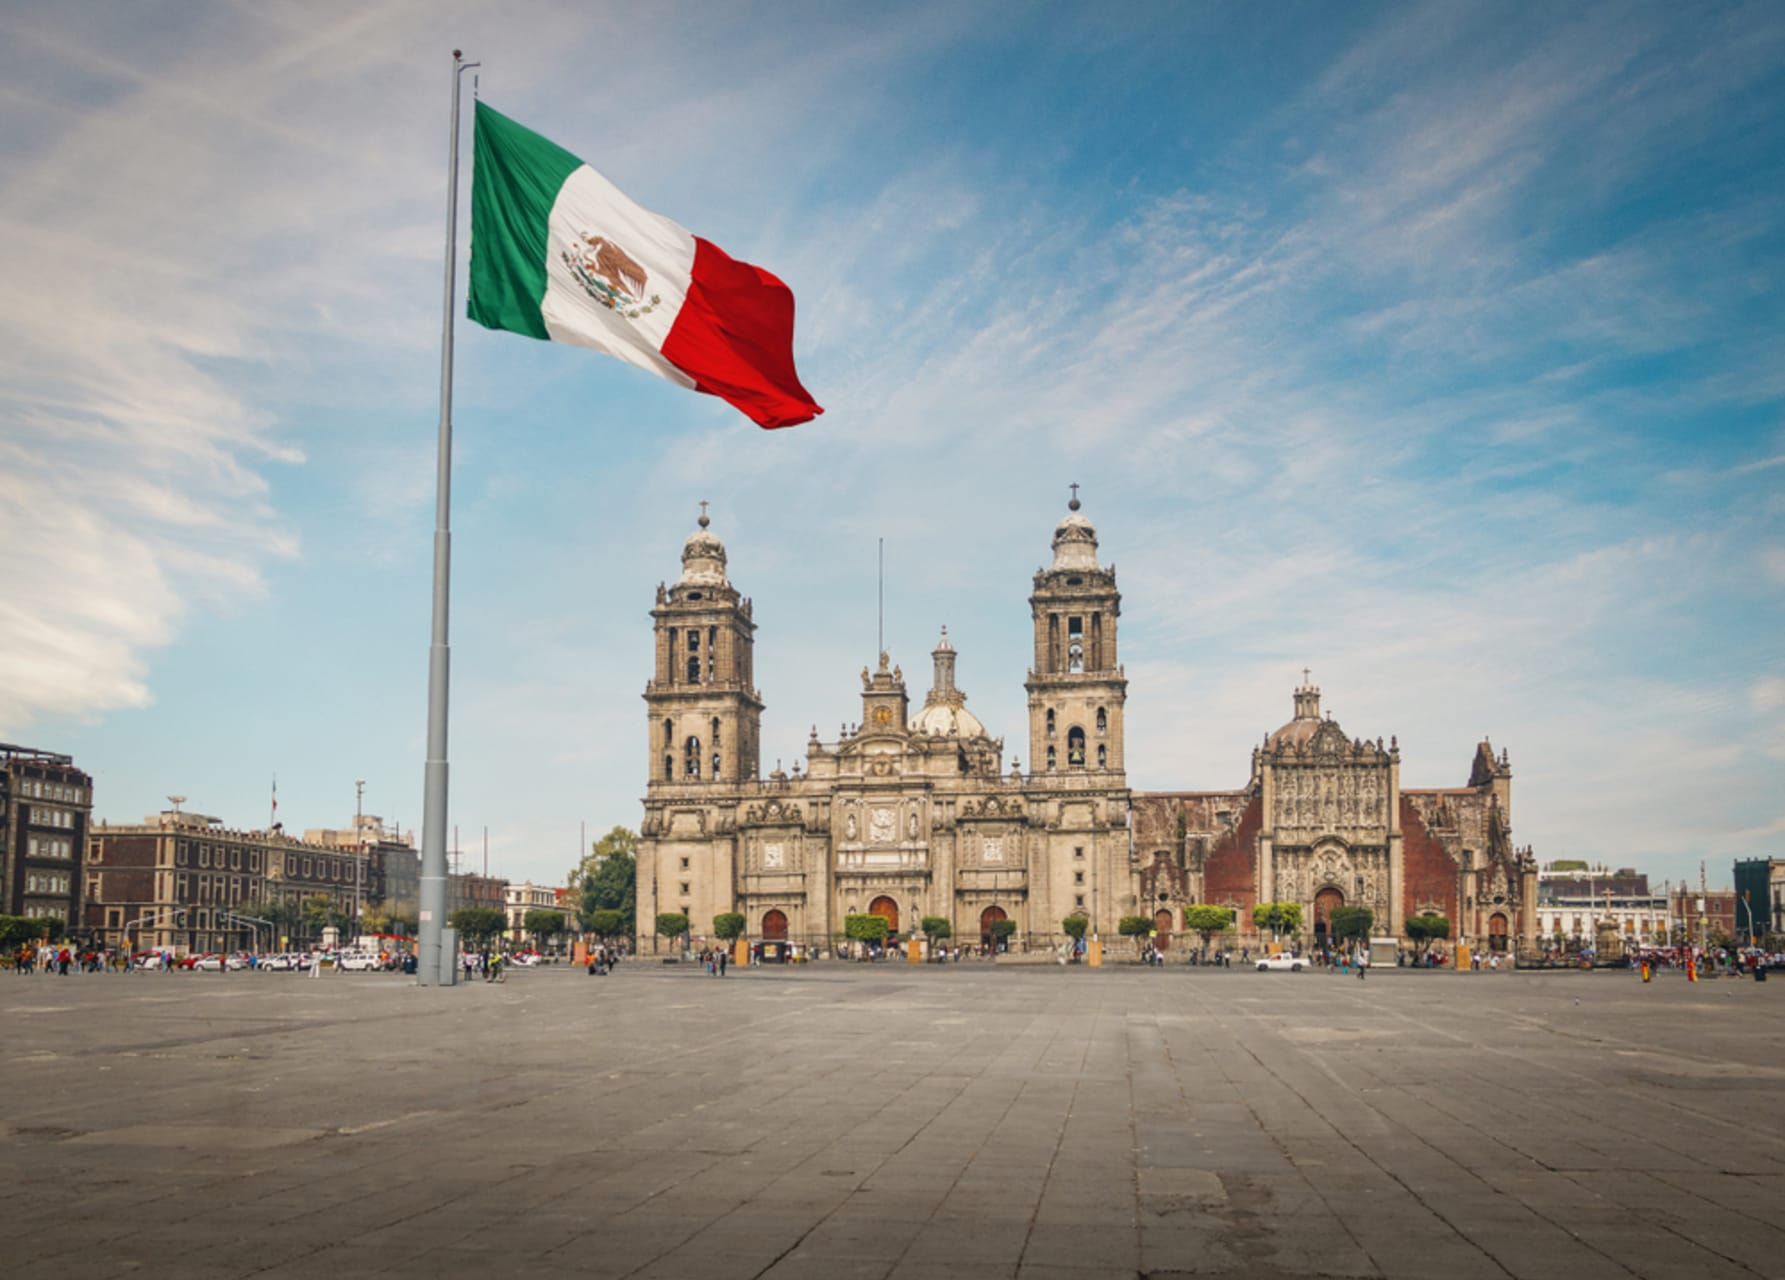 Mexico City - The Zocalo and the Foundation of Tenochtitlan